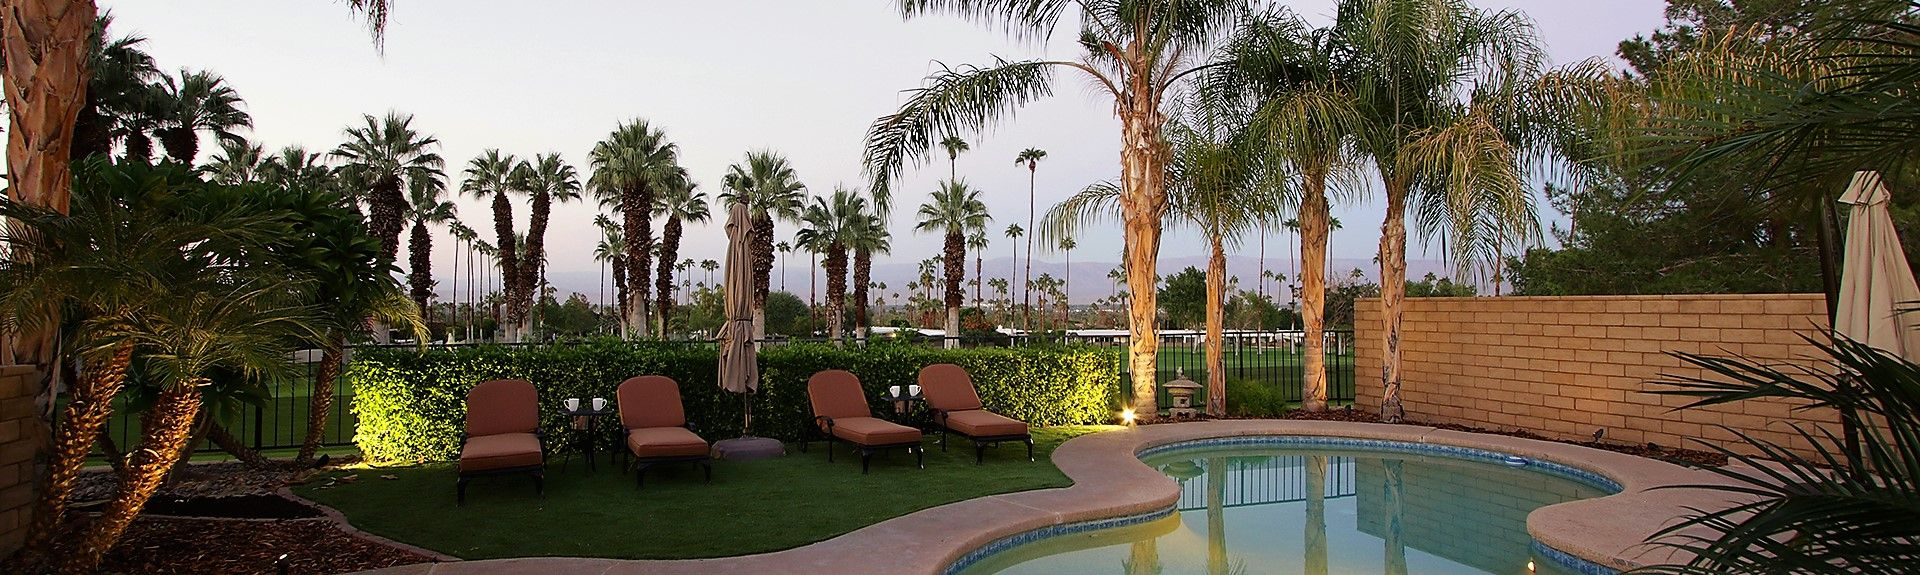 Shadow Mountain Resort, Palm Desert, CA, USA